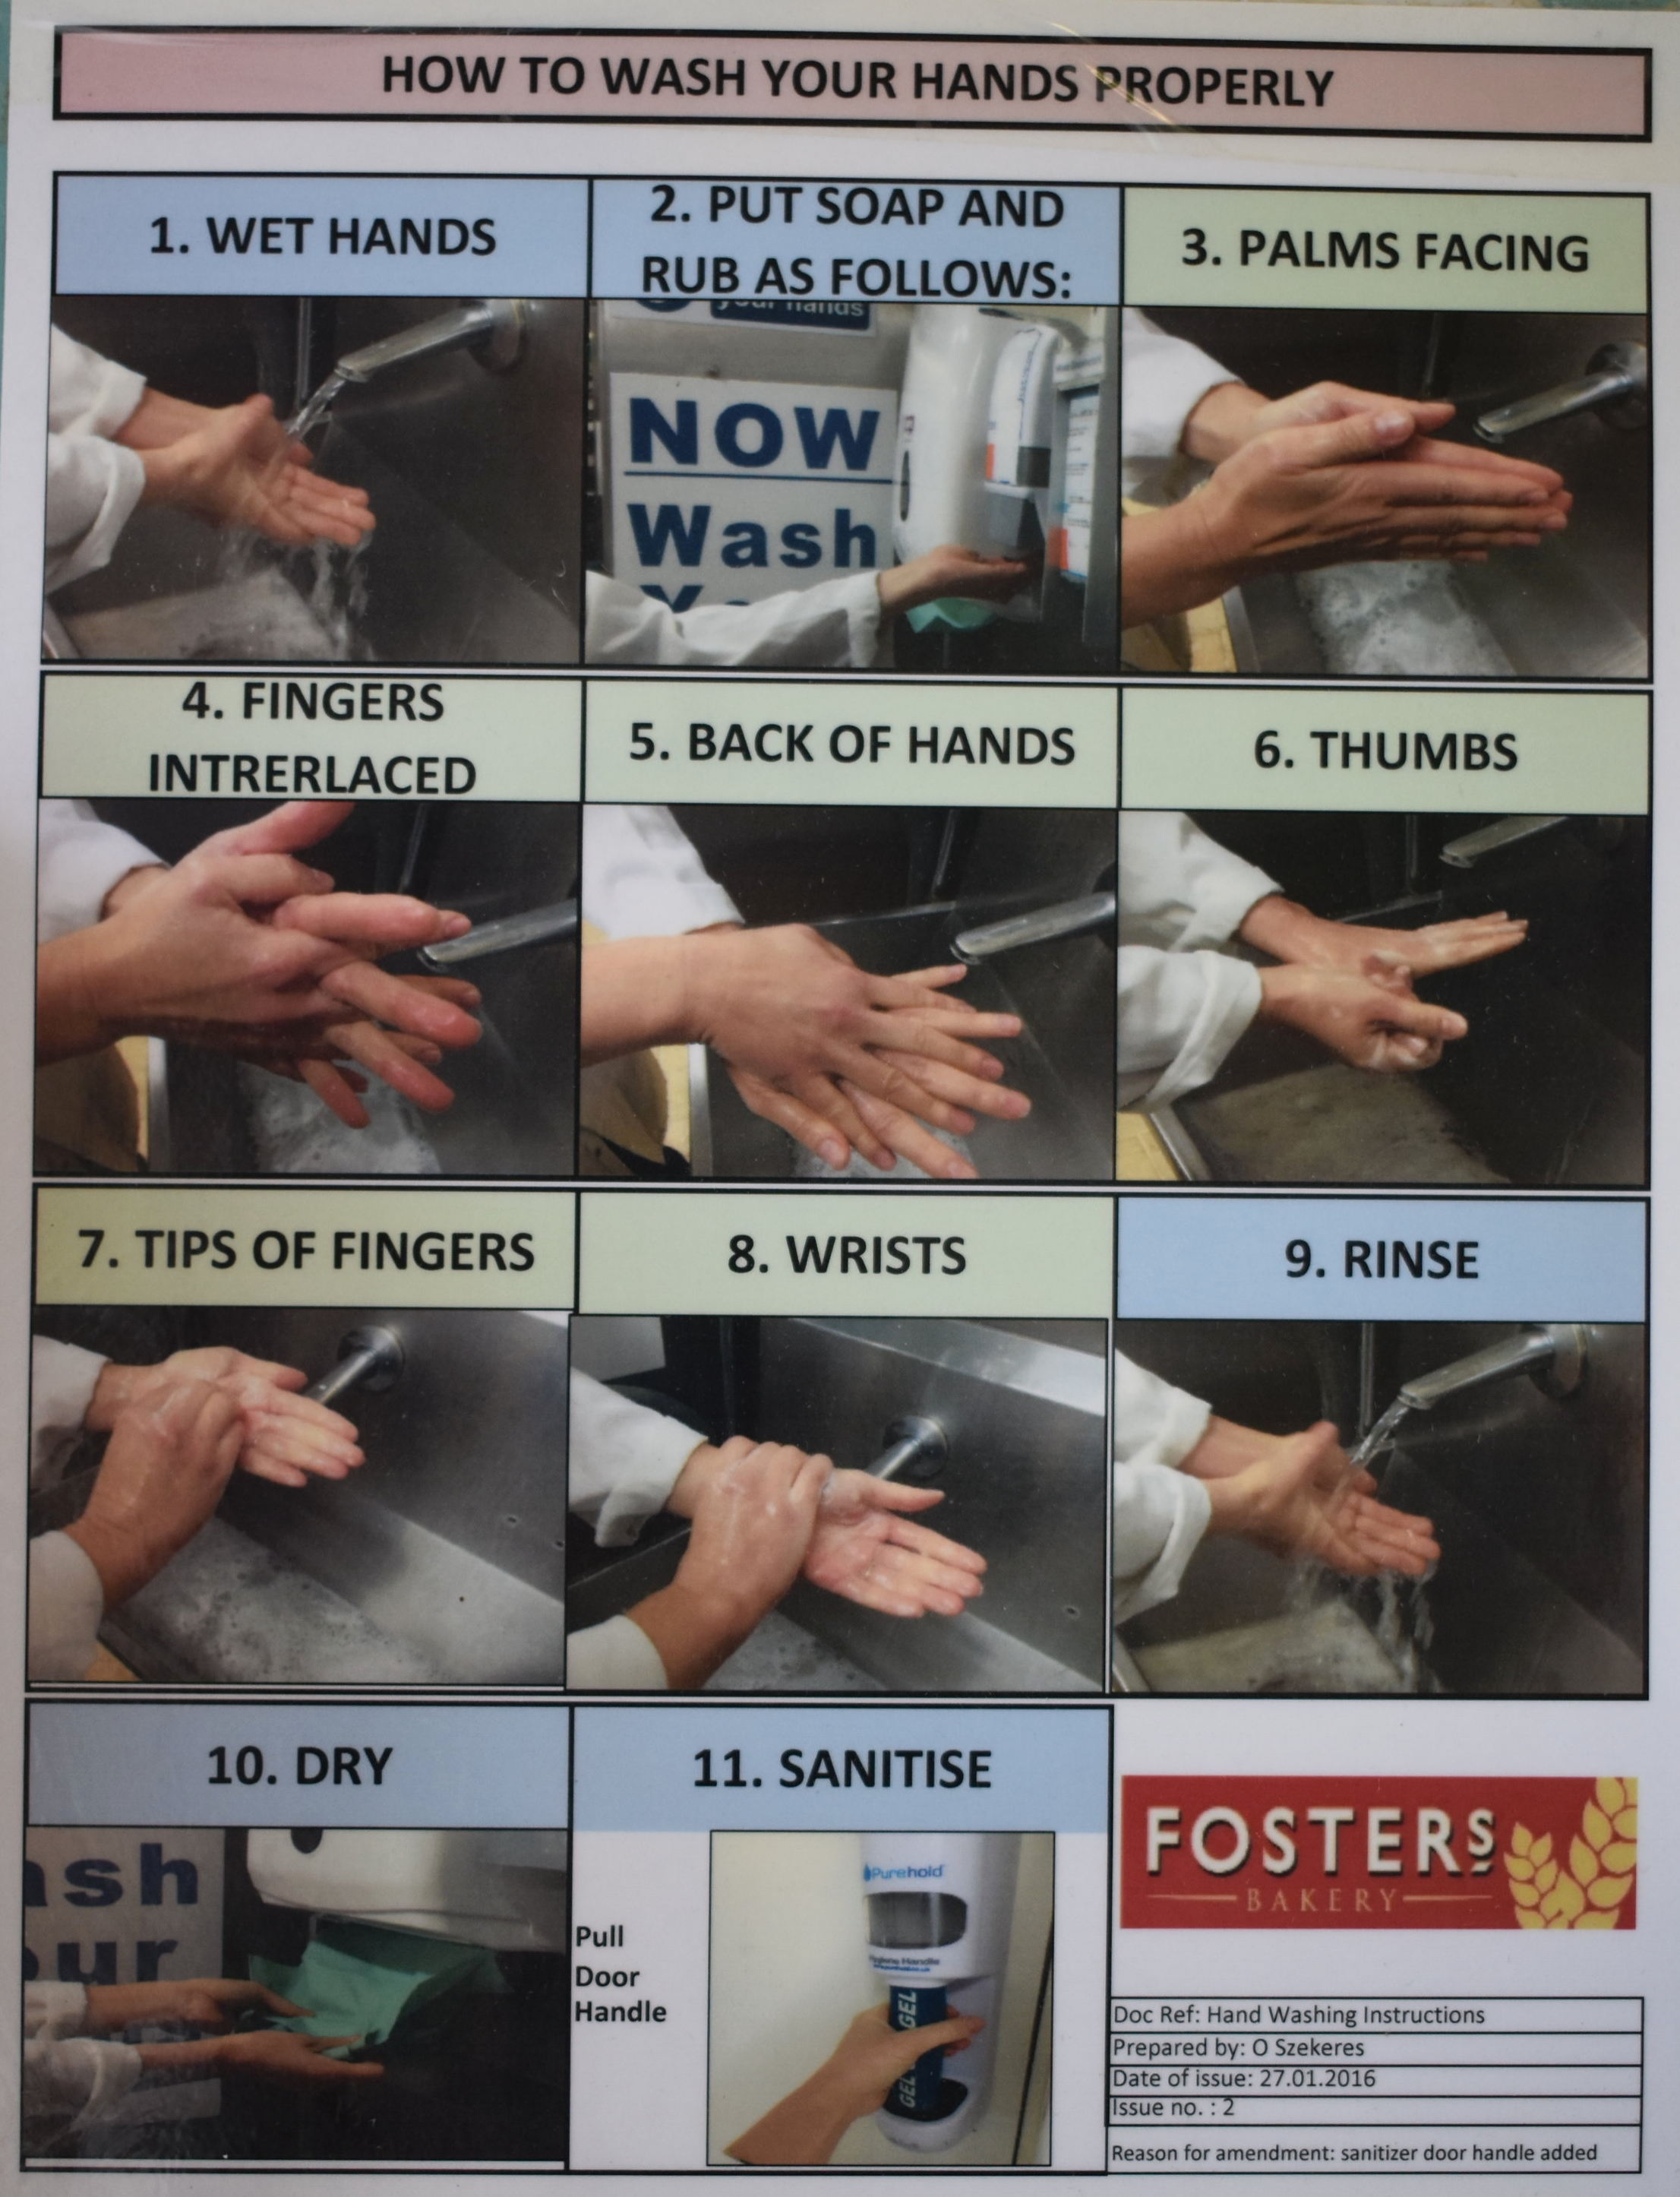 Fosters Bakery signs to show people how to wash their hands properly